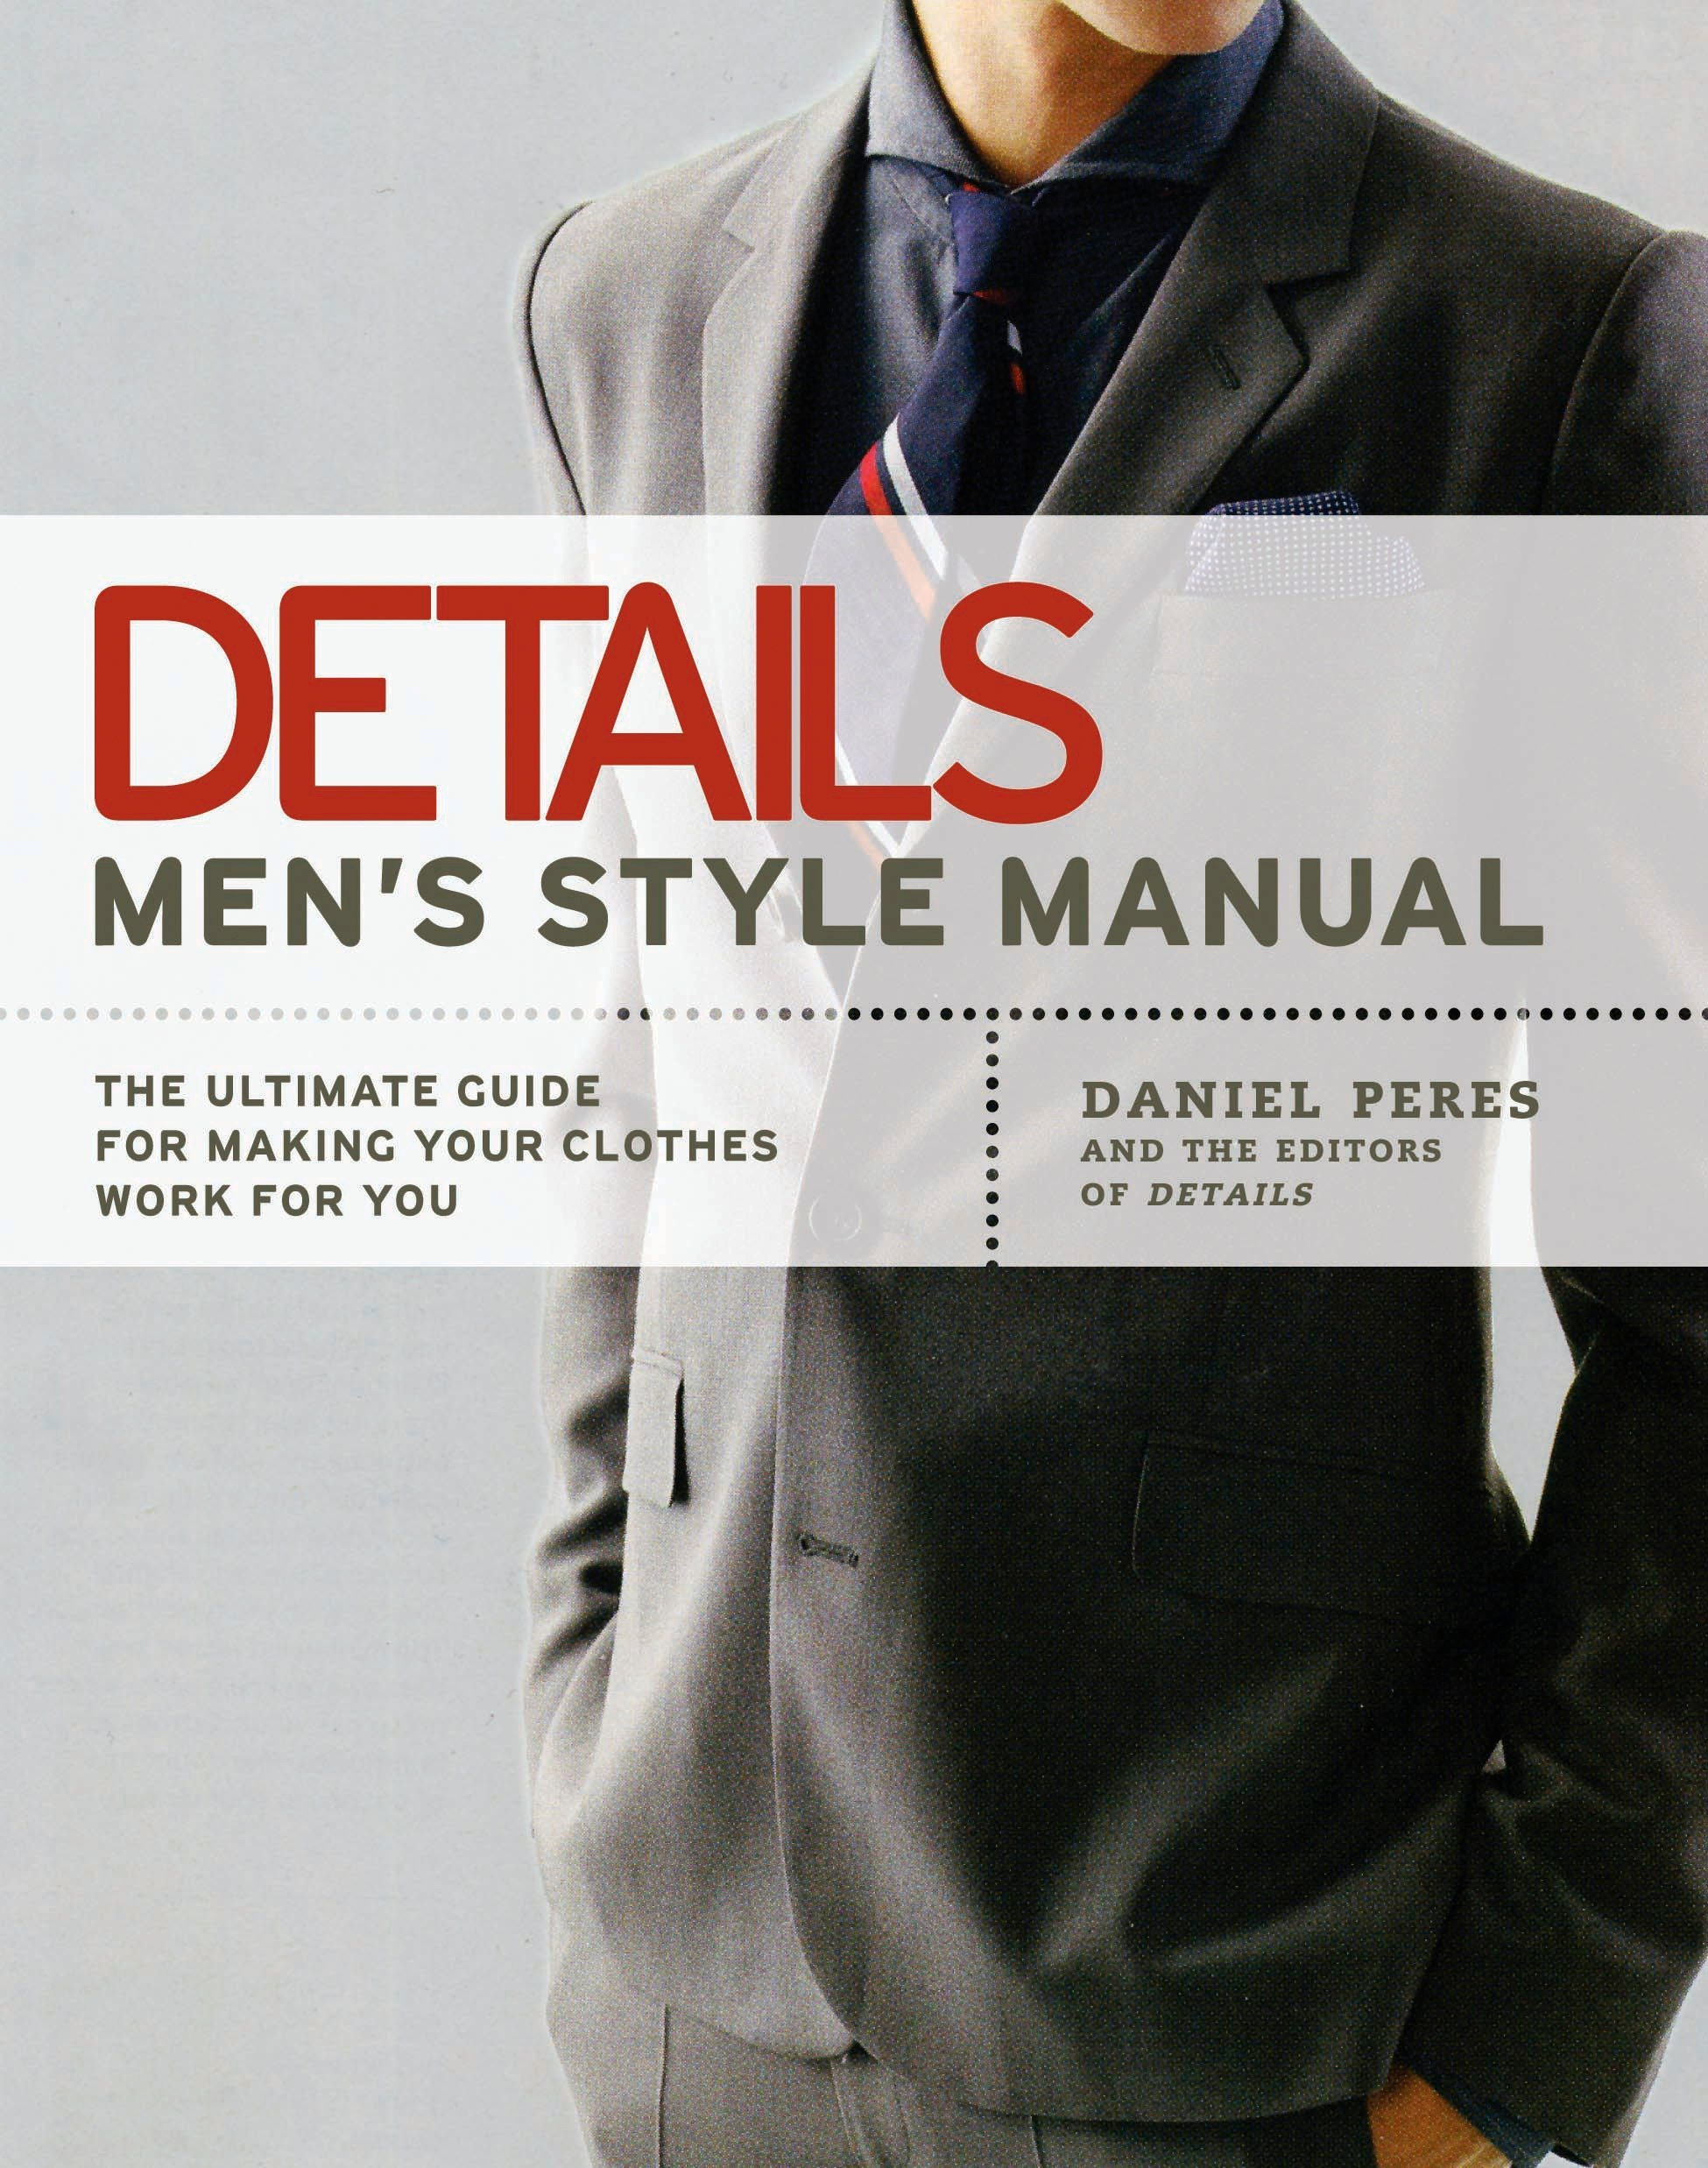 details men s style manual the ultimate guide for making your clothes work for you paperback